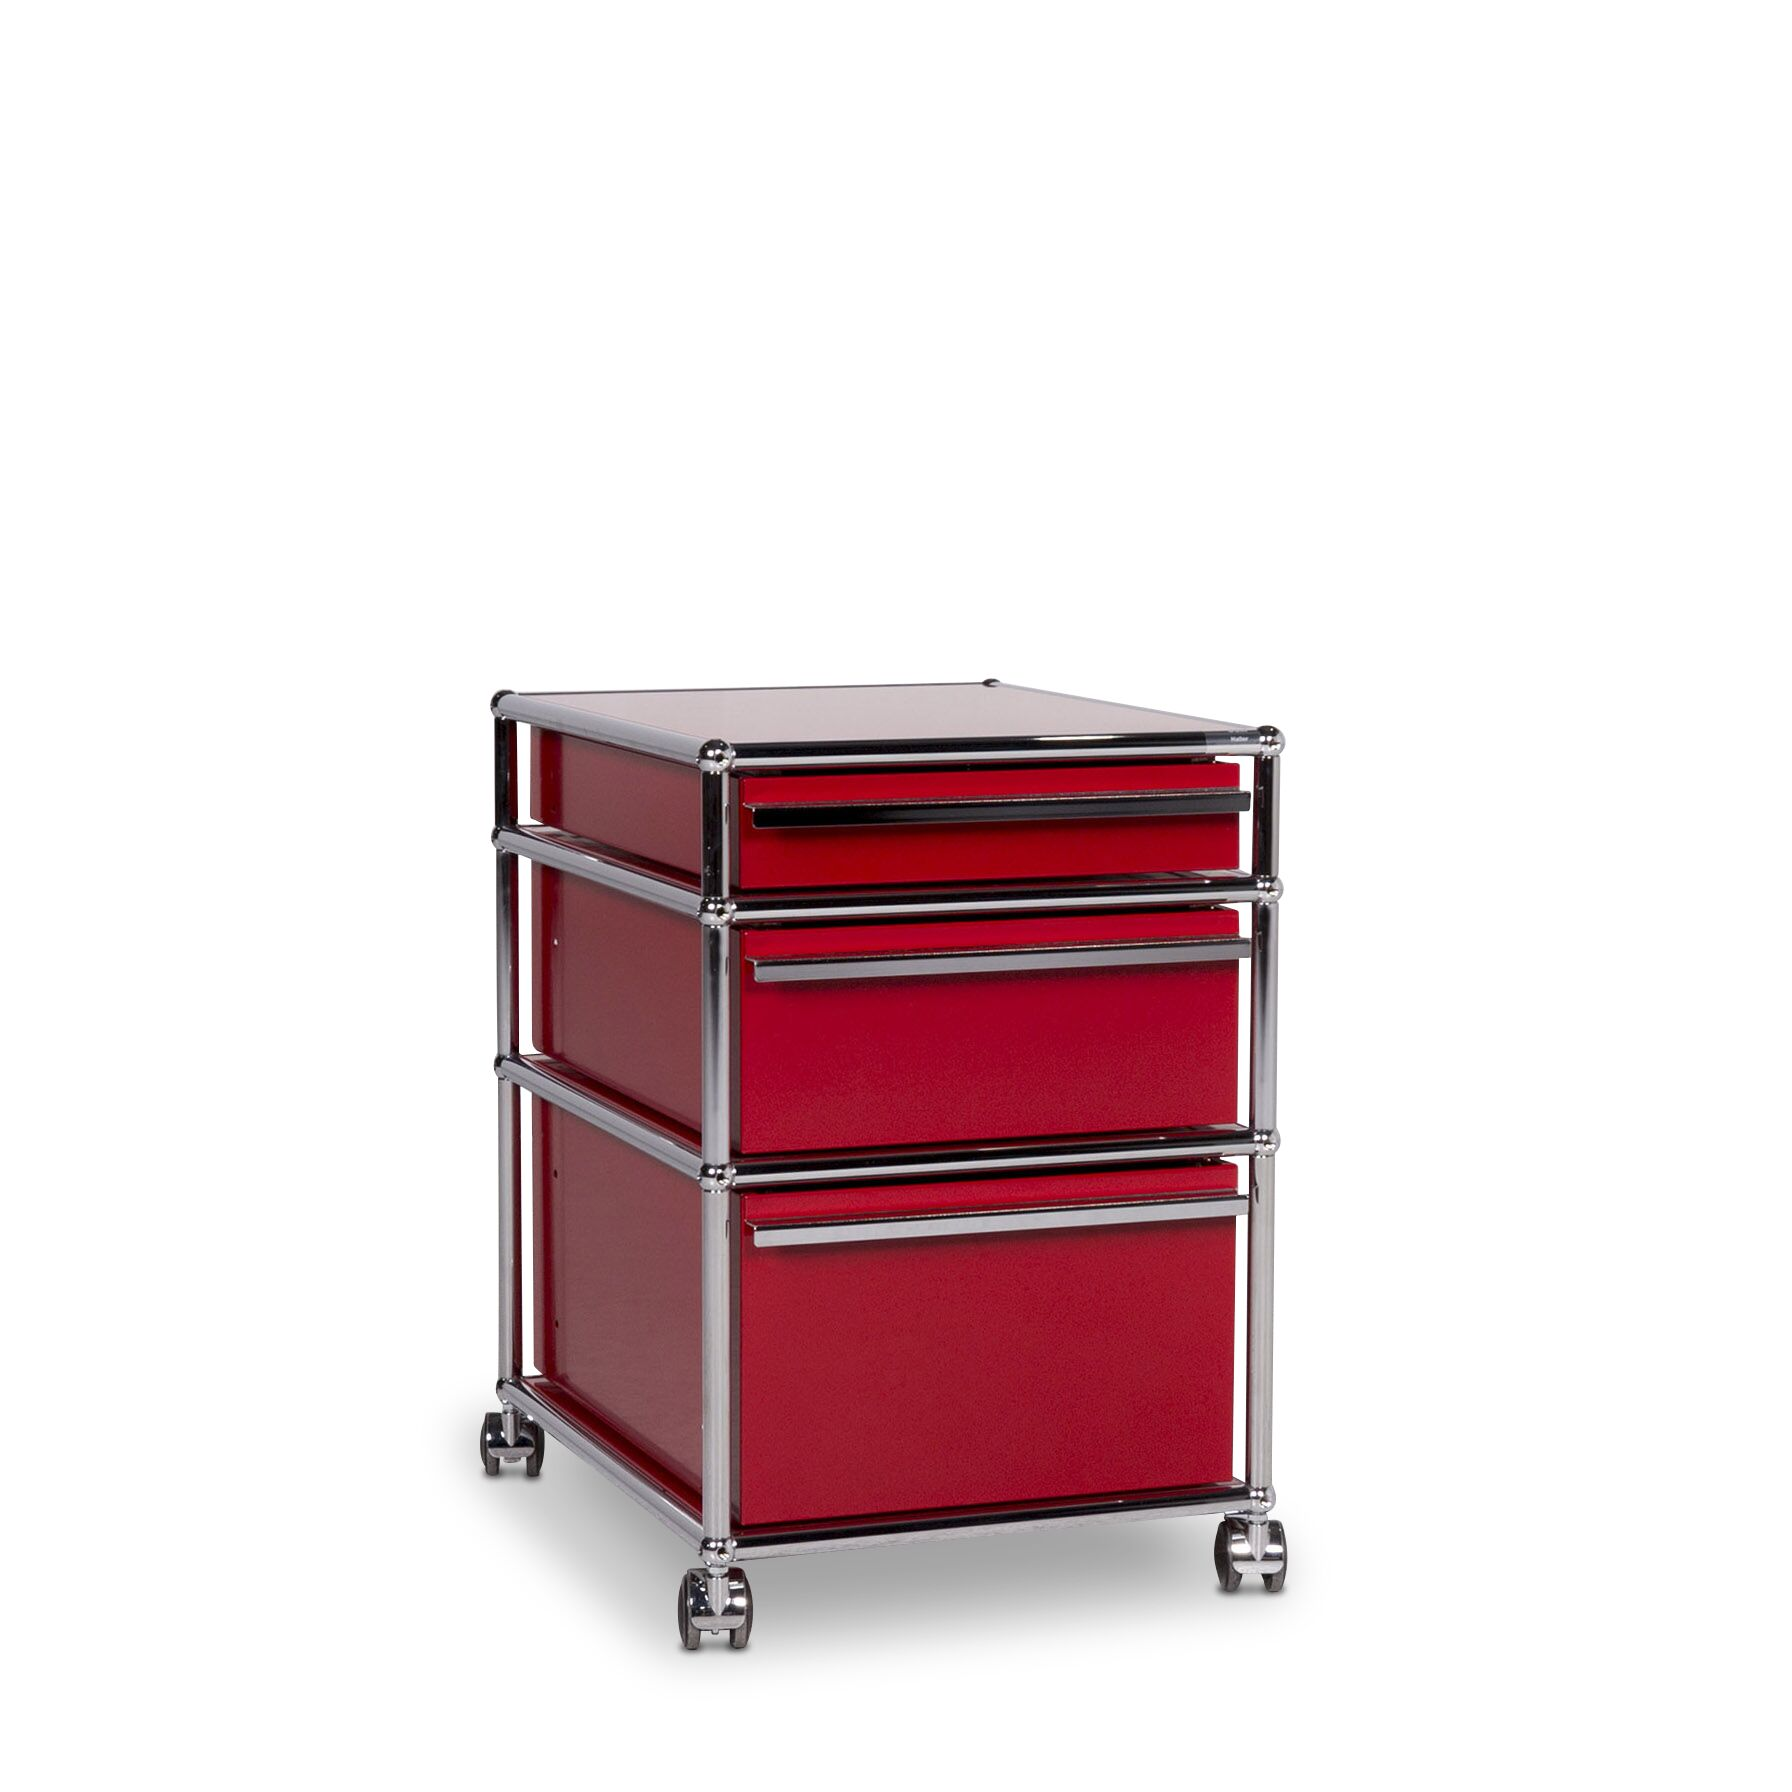 Metall Rollcontainer Usm Haller Metall Regal Sideboard Rollcontainer 3 Schubladen Rot 10060